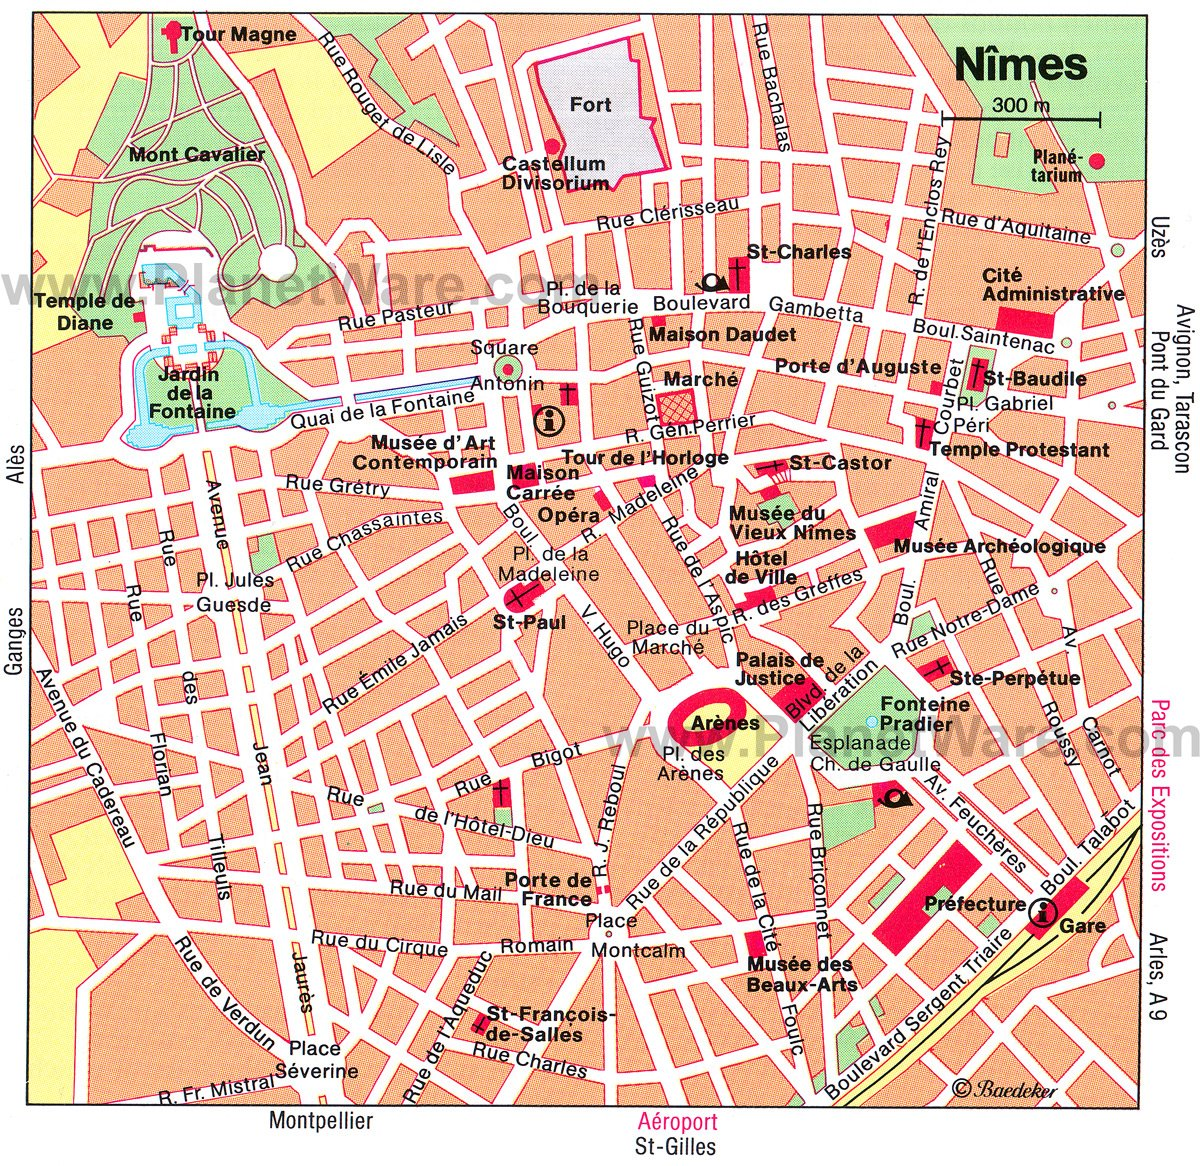 10 TopRated Tourist Attractions in Nimes – Paris France Tourist Attractions Map